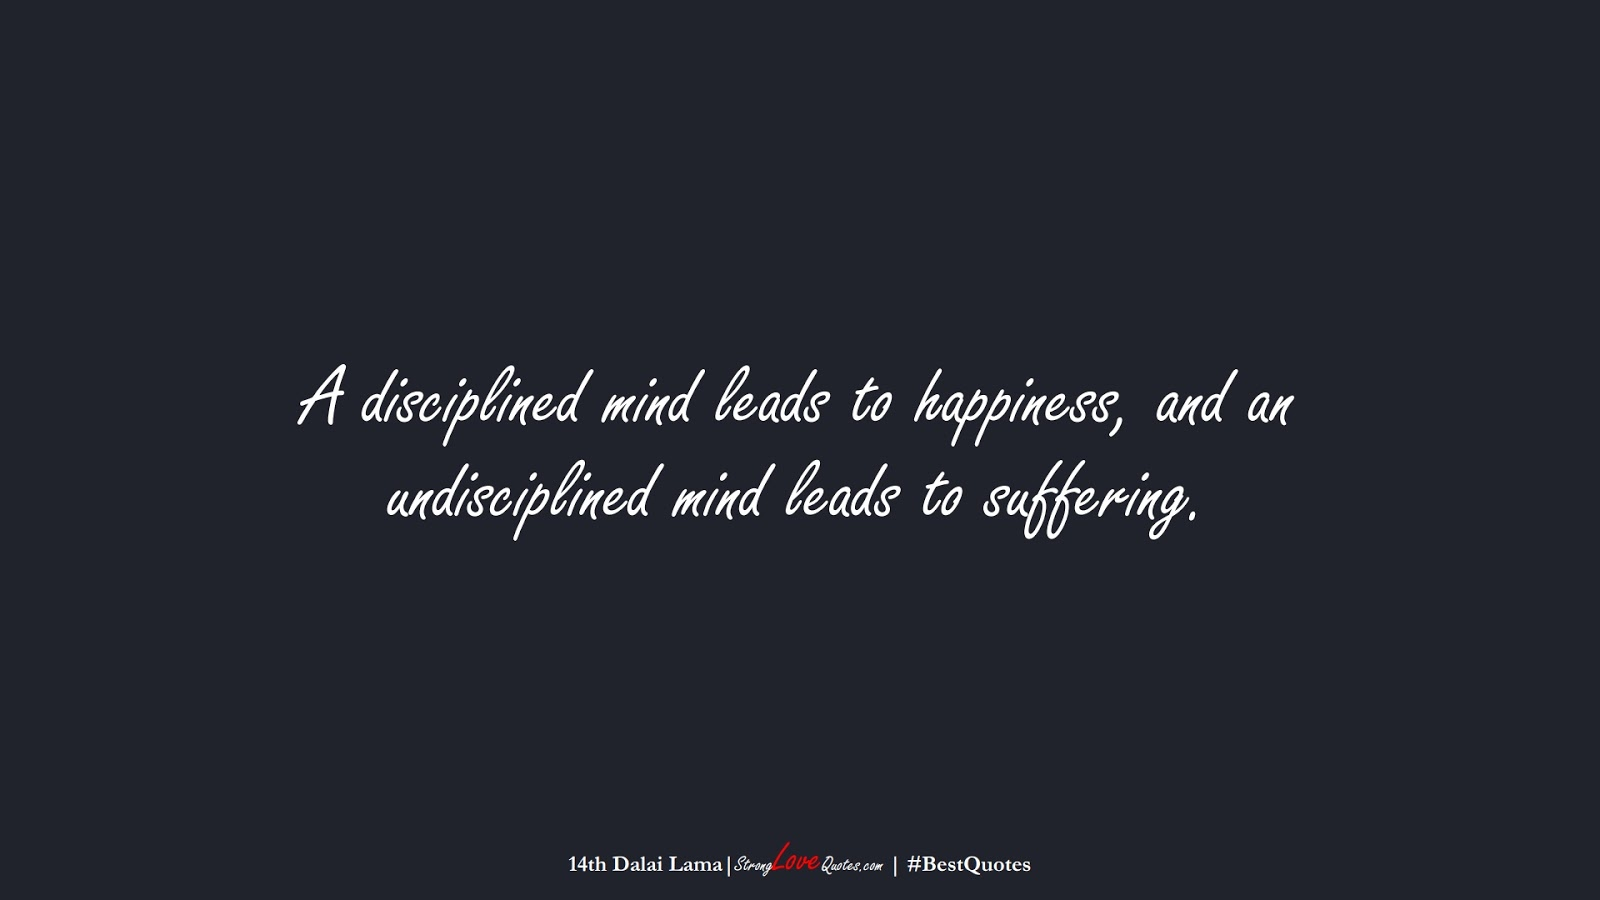 A disciplined mind leads to happiness, and an undisciplined mind leads to suffering. (14th Dalai Lama);  #BestQuotes